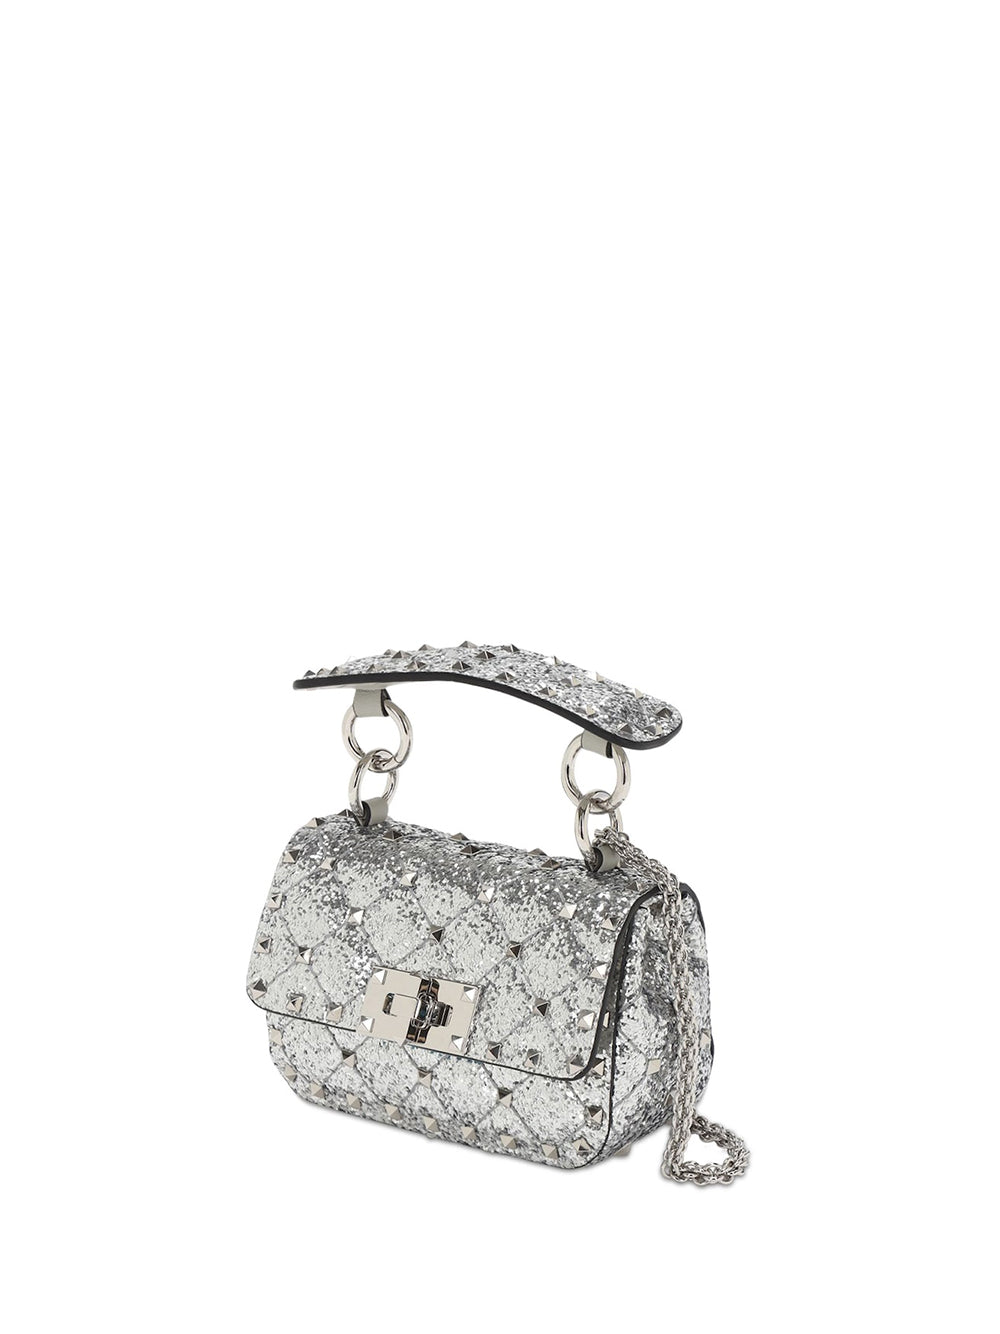 Micro Rockstud Spike Glitter Leather Bag - Silver 3/4